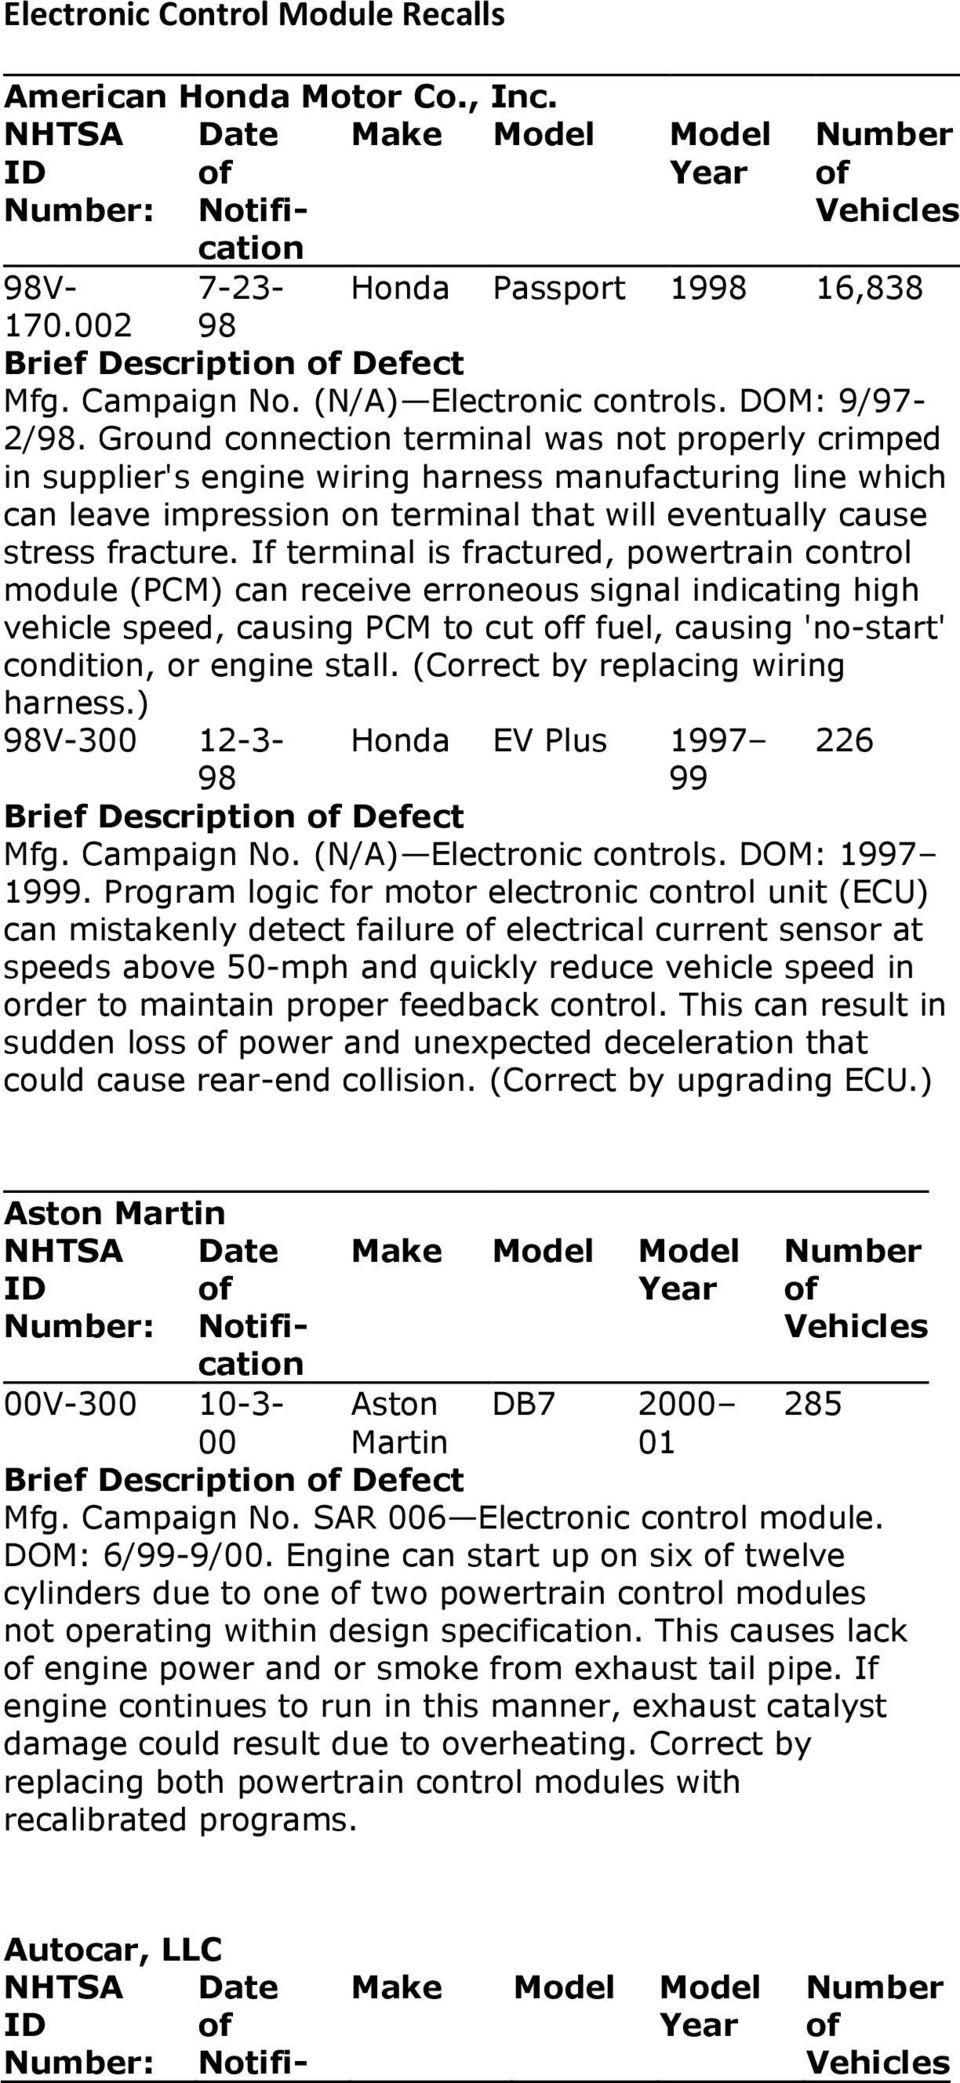 Electronic Control Module Recalls Pdf Dodge Ram Wiring Harness Recall If Terminal Is Fractured Powertrain Pcm Can Receive Erroneous Signal Indicating